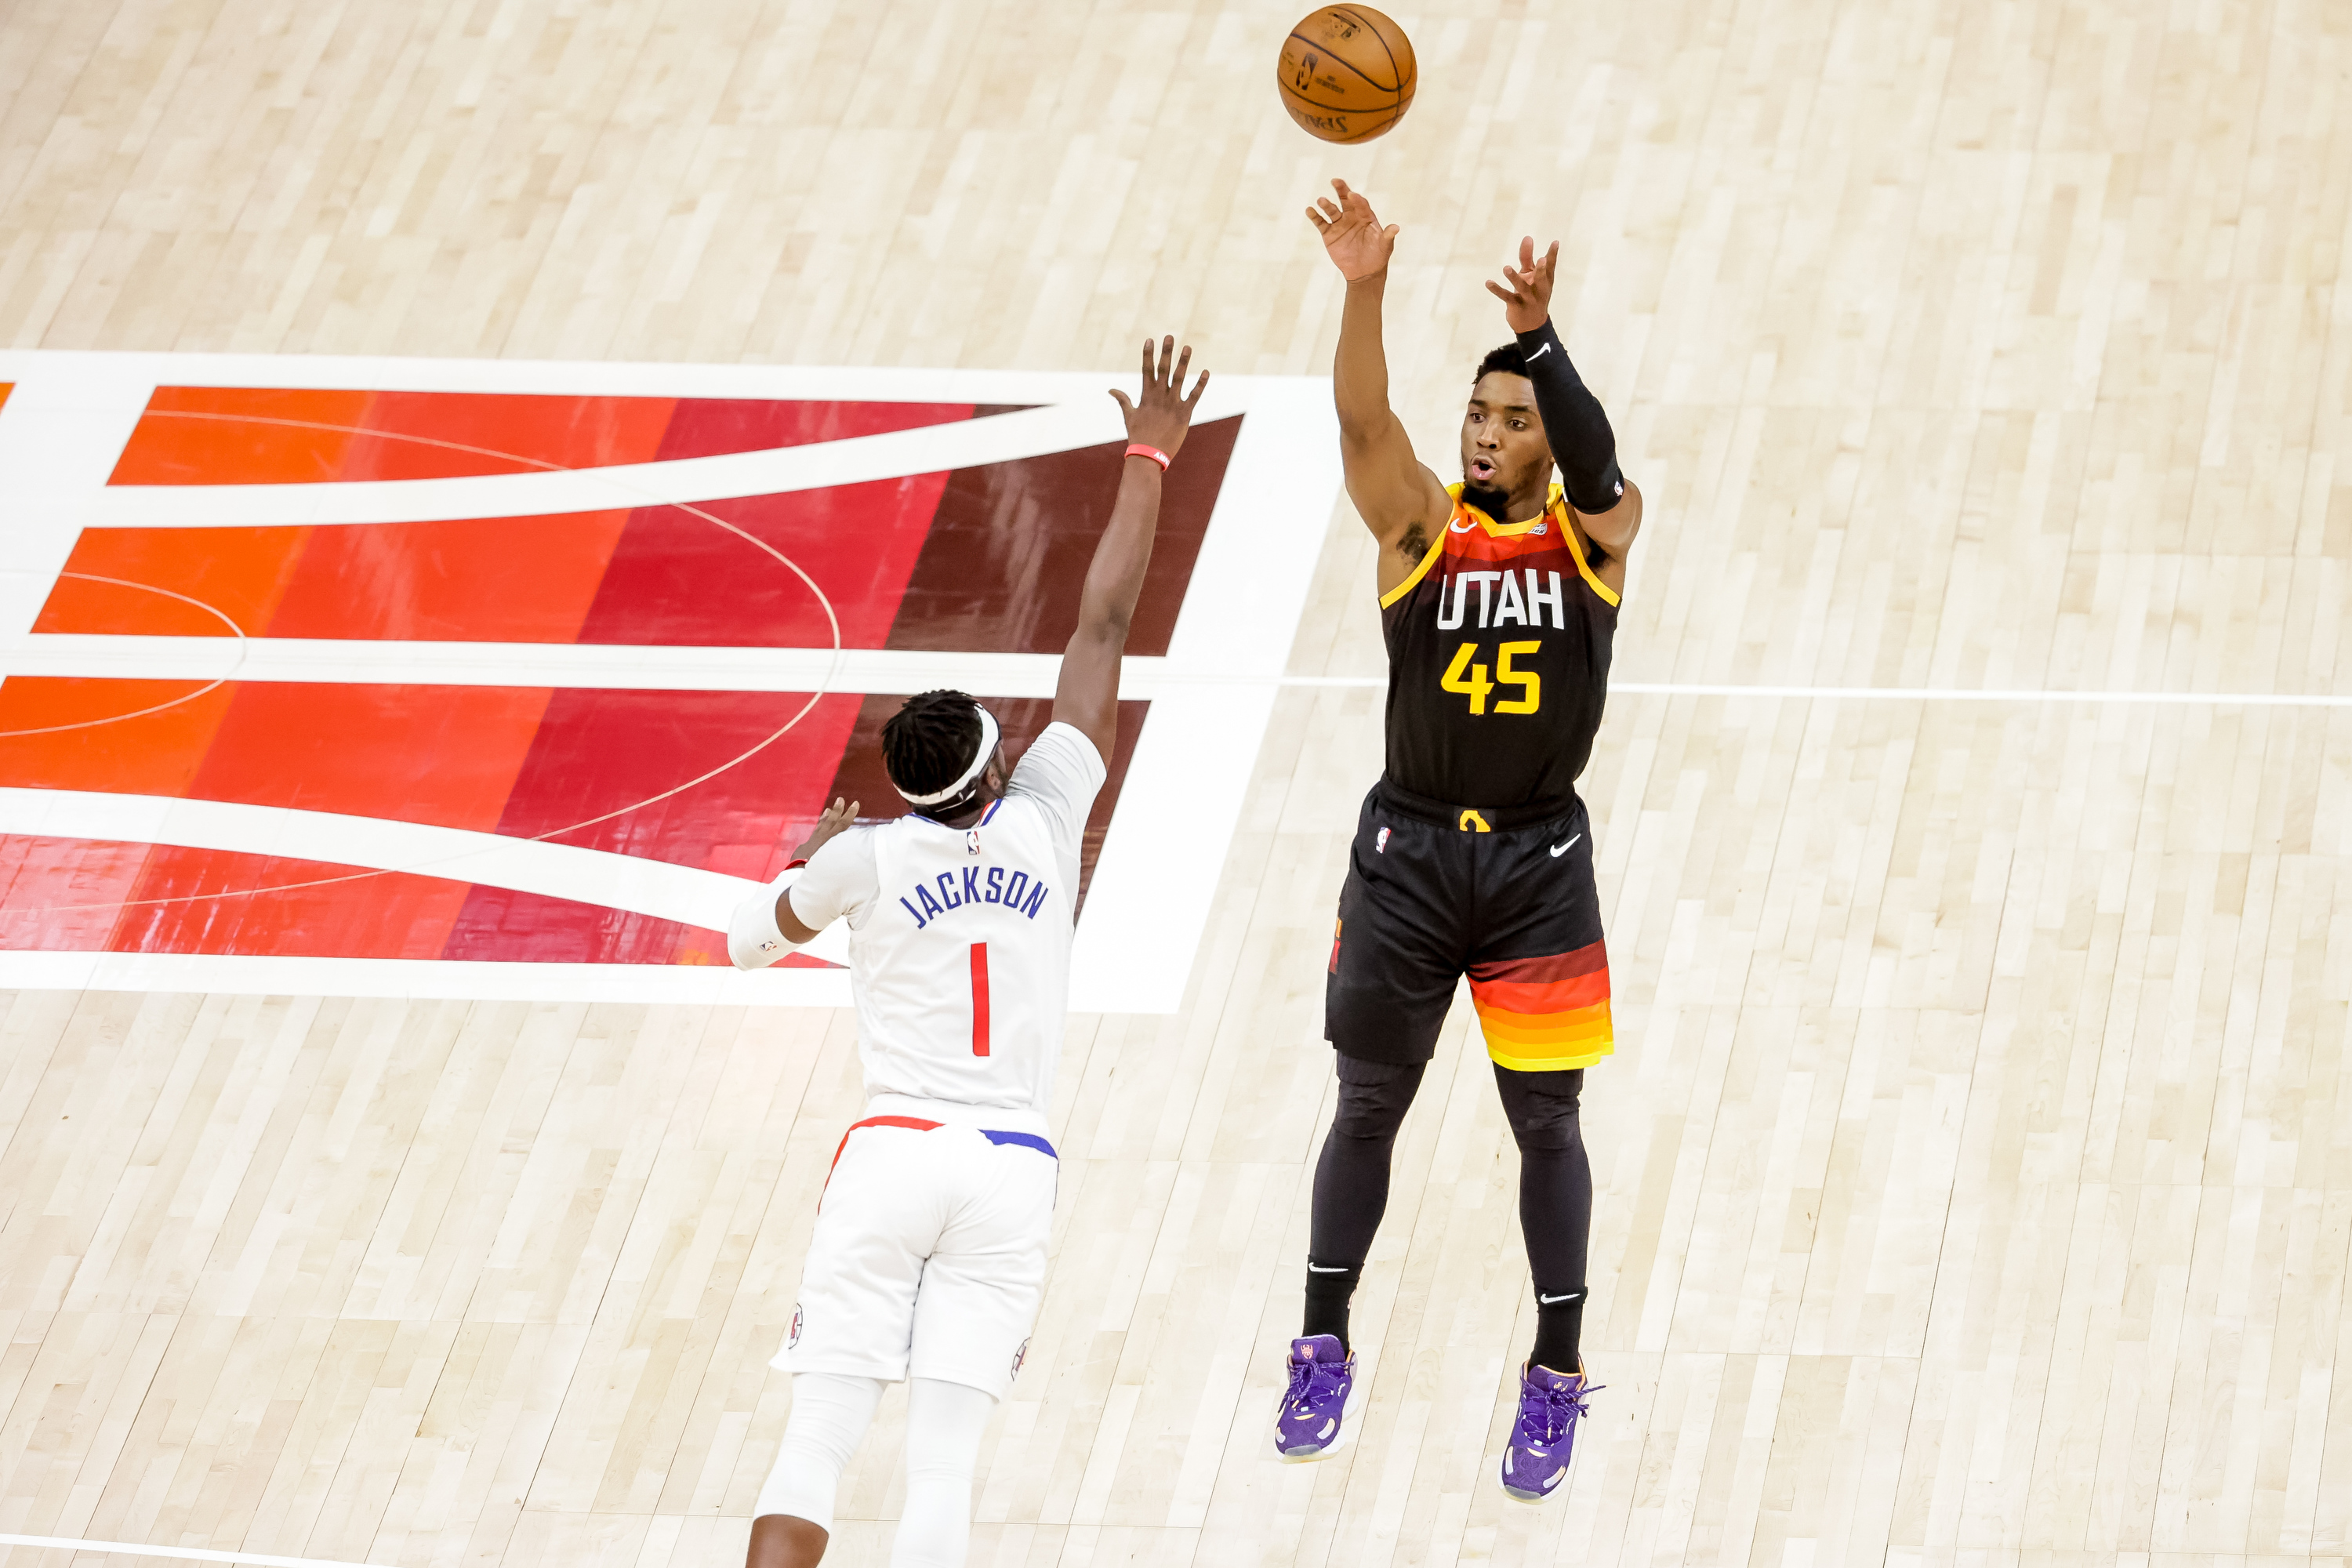 Utah Jazz guard Donovan Mitchell (45) shoots over LA Clippers guard Reggie Jackson (1) during Game 1 of the Western Conference semifinals at Vivint Smart Home Arena in Salt Lake City on Tuesday, June 8, 2021.